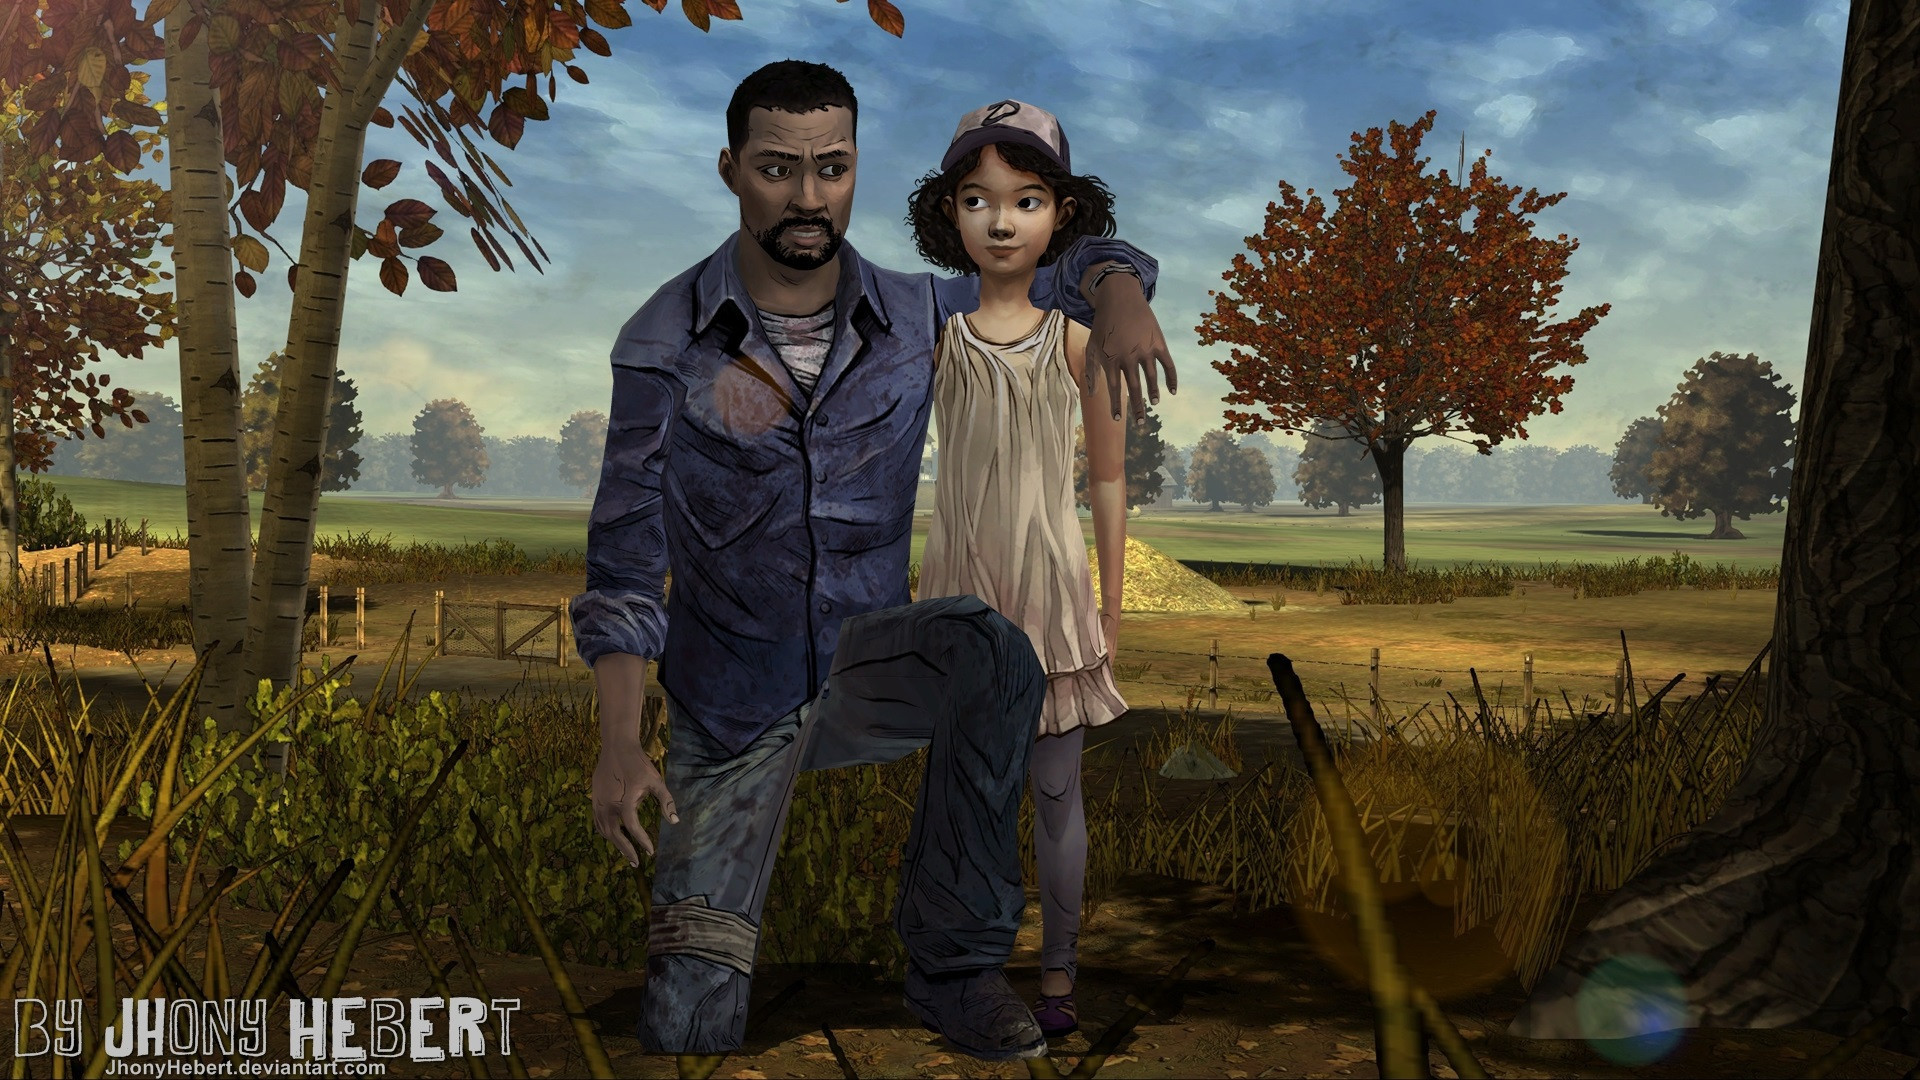 Games Movies Music Anime: The Walking Dead Game Season 2 – Comic-Con  Details, Clementine Returns